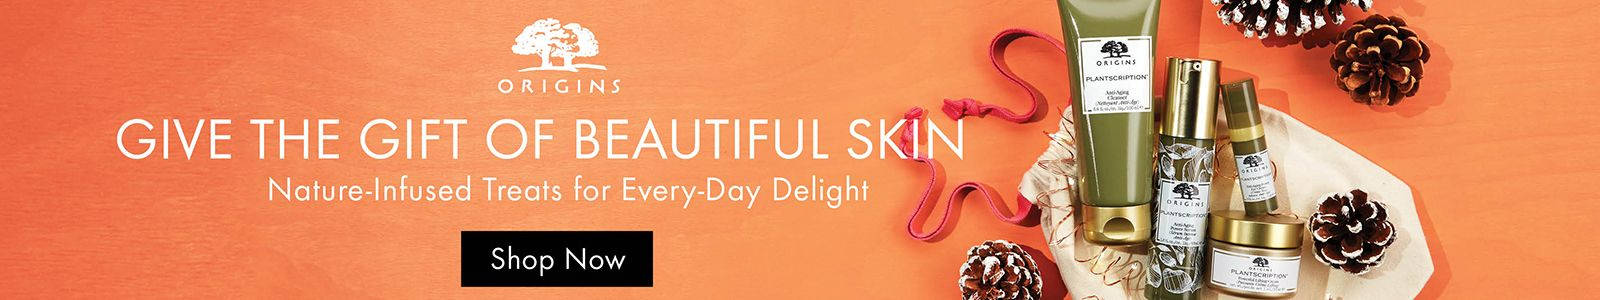 Origins, Give The Gift of Beautiful Skin, Shop Now